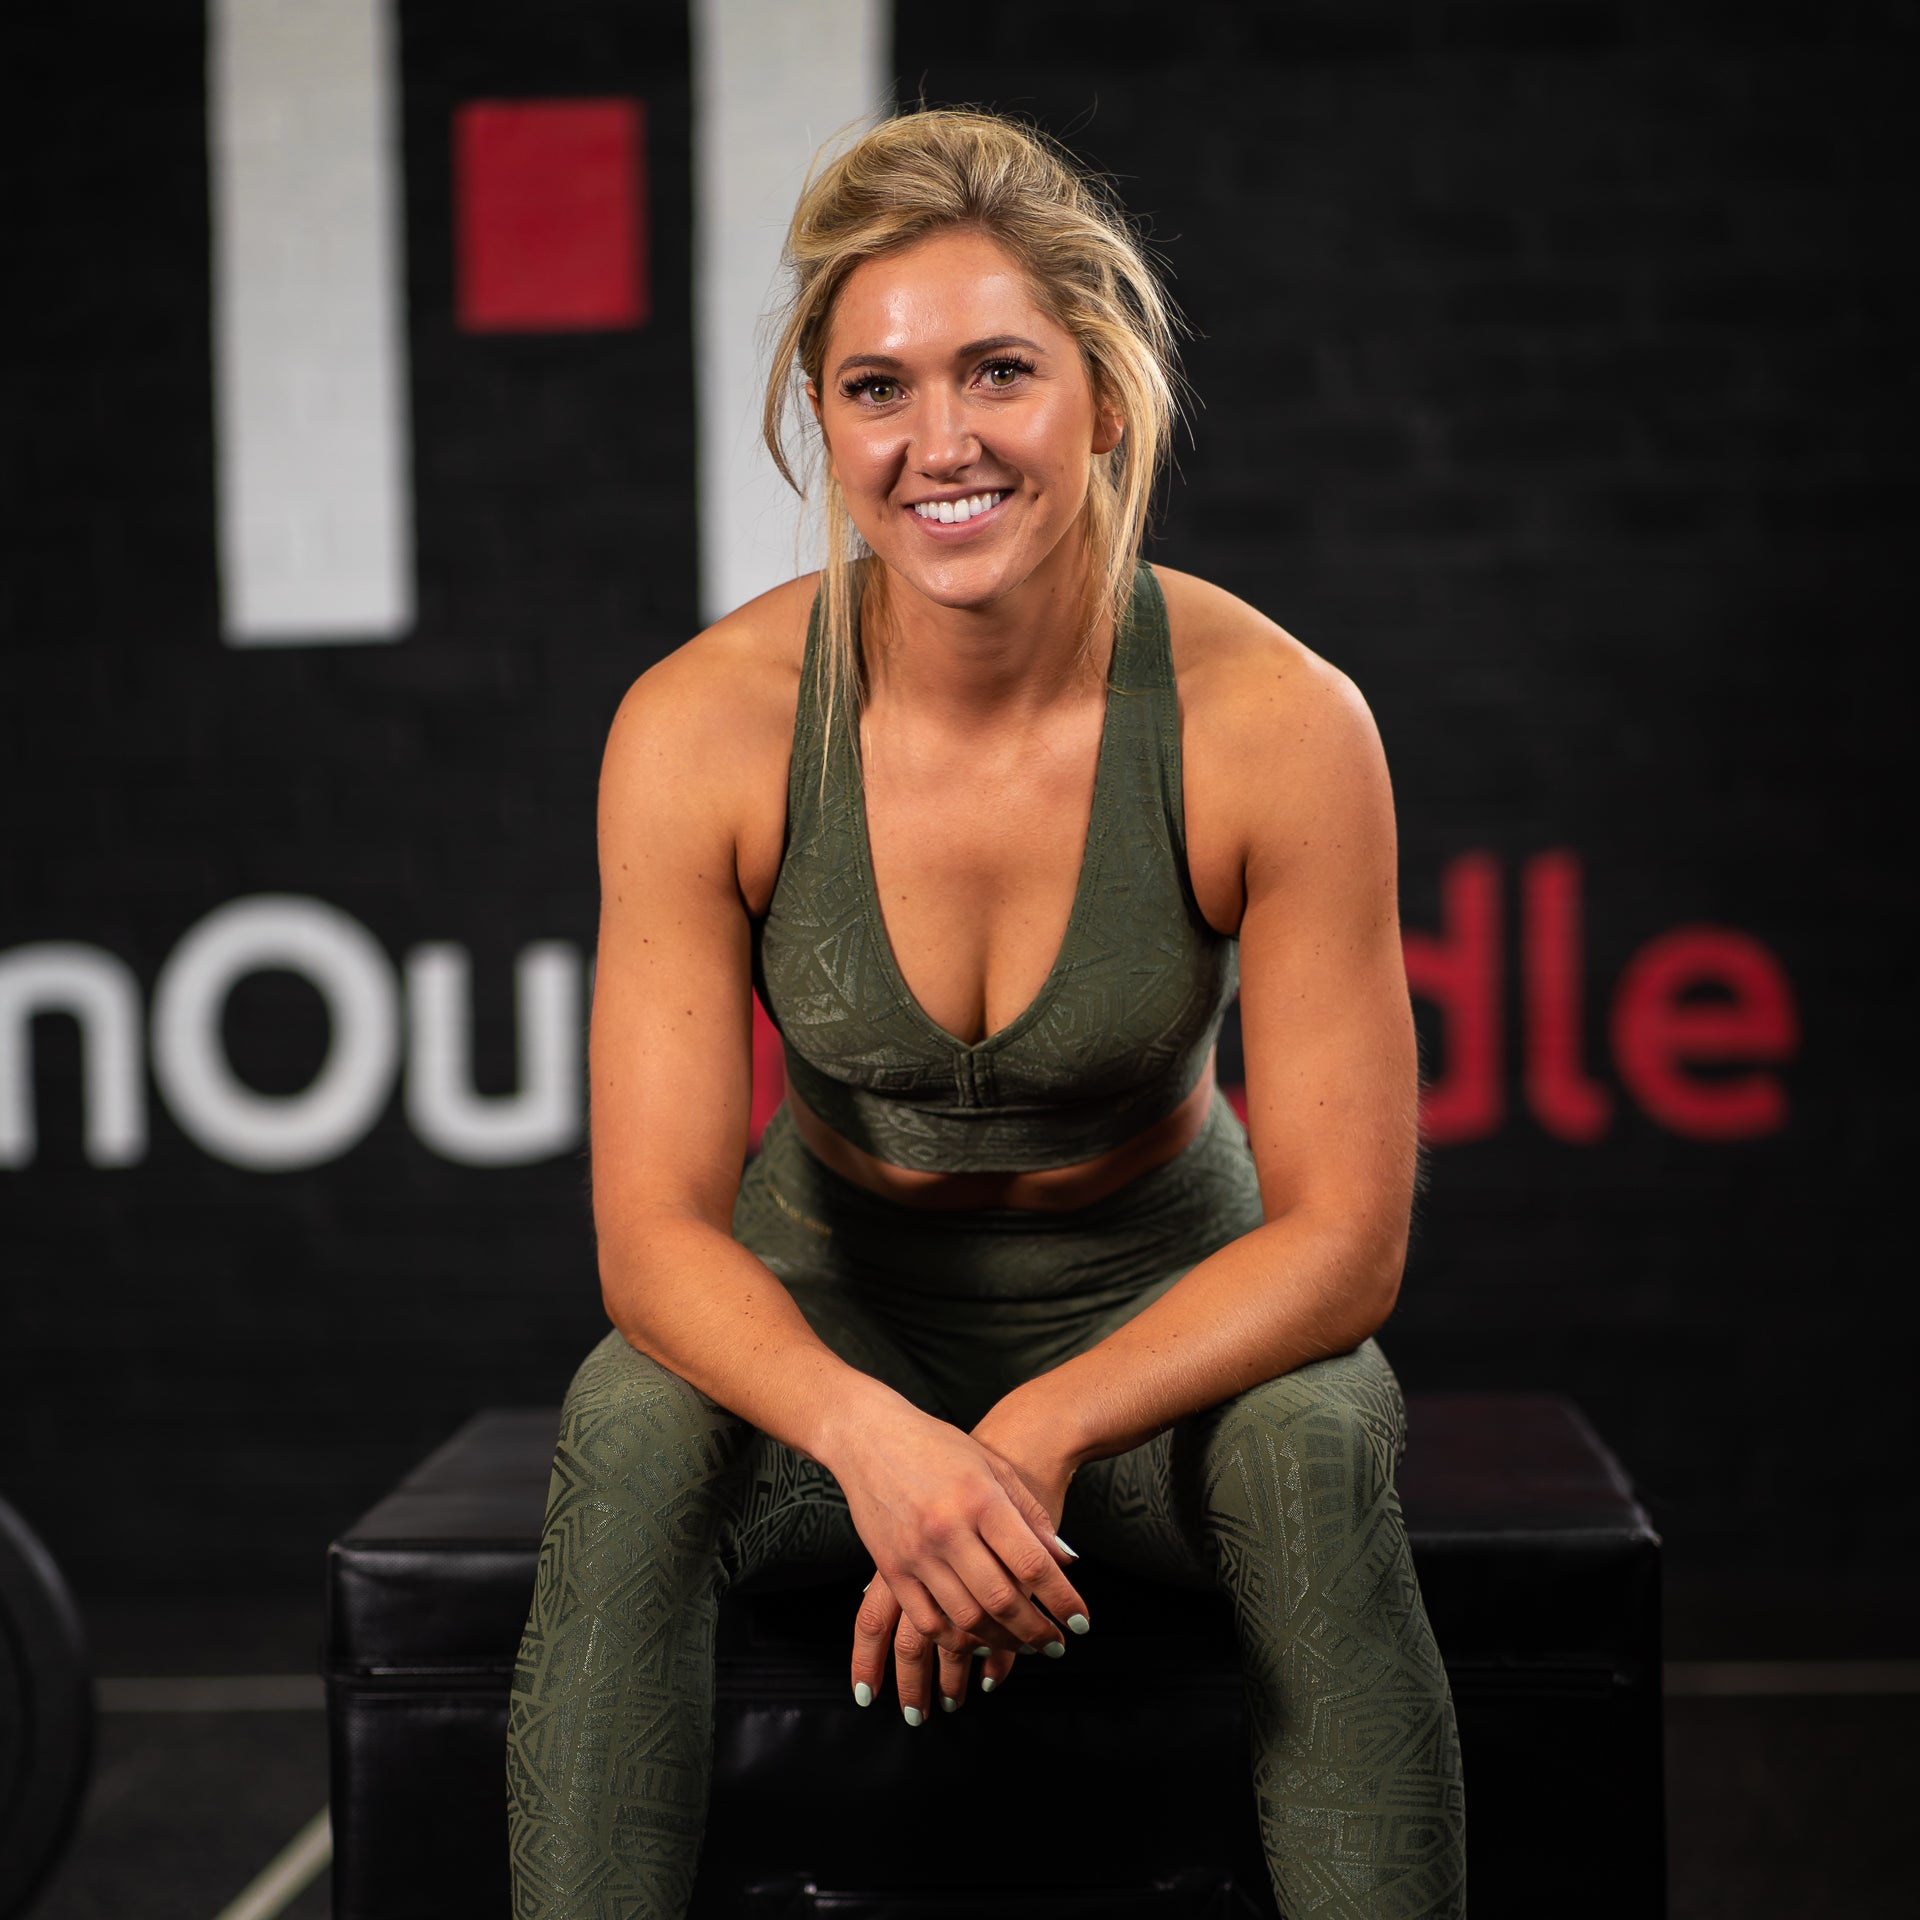 A fit lady with blonde hair in a gym wearing khaki green leggings and a sports bra from the Sara Da Silva tribe collection.